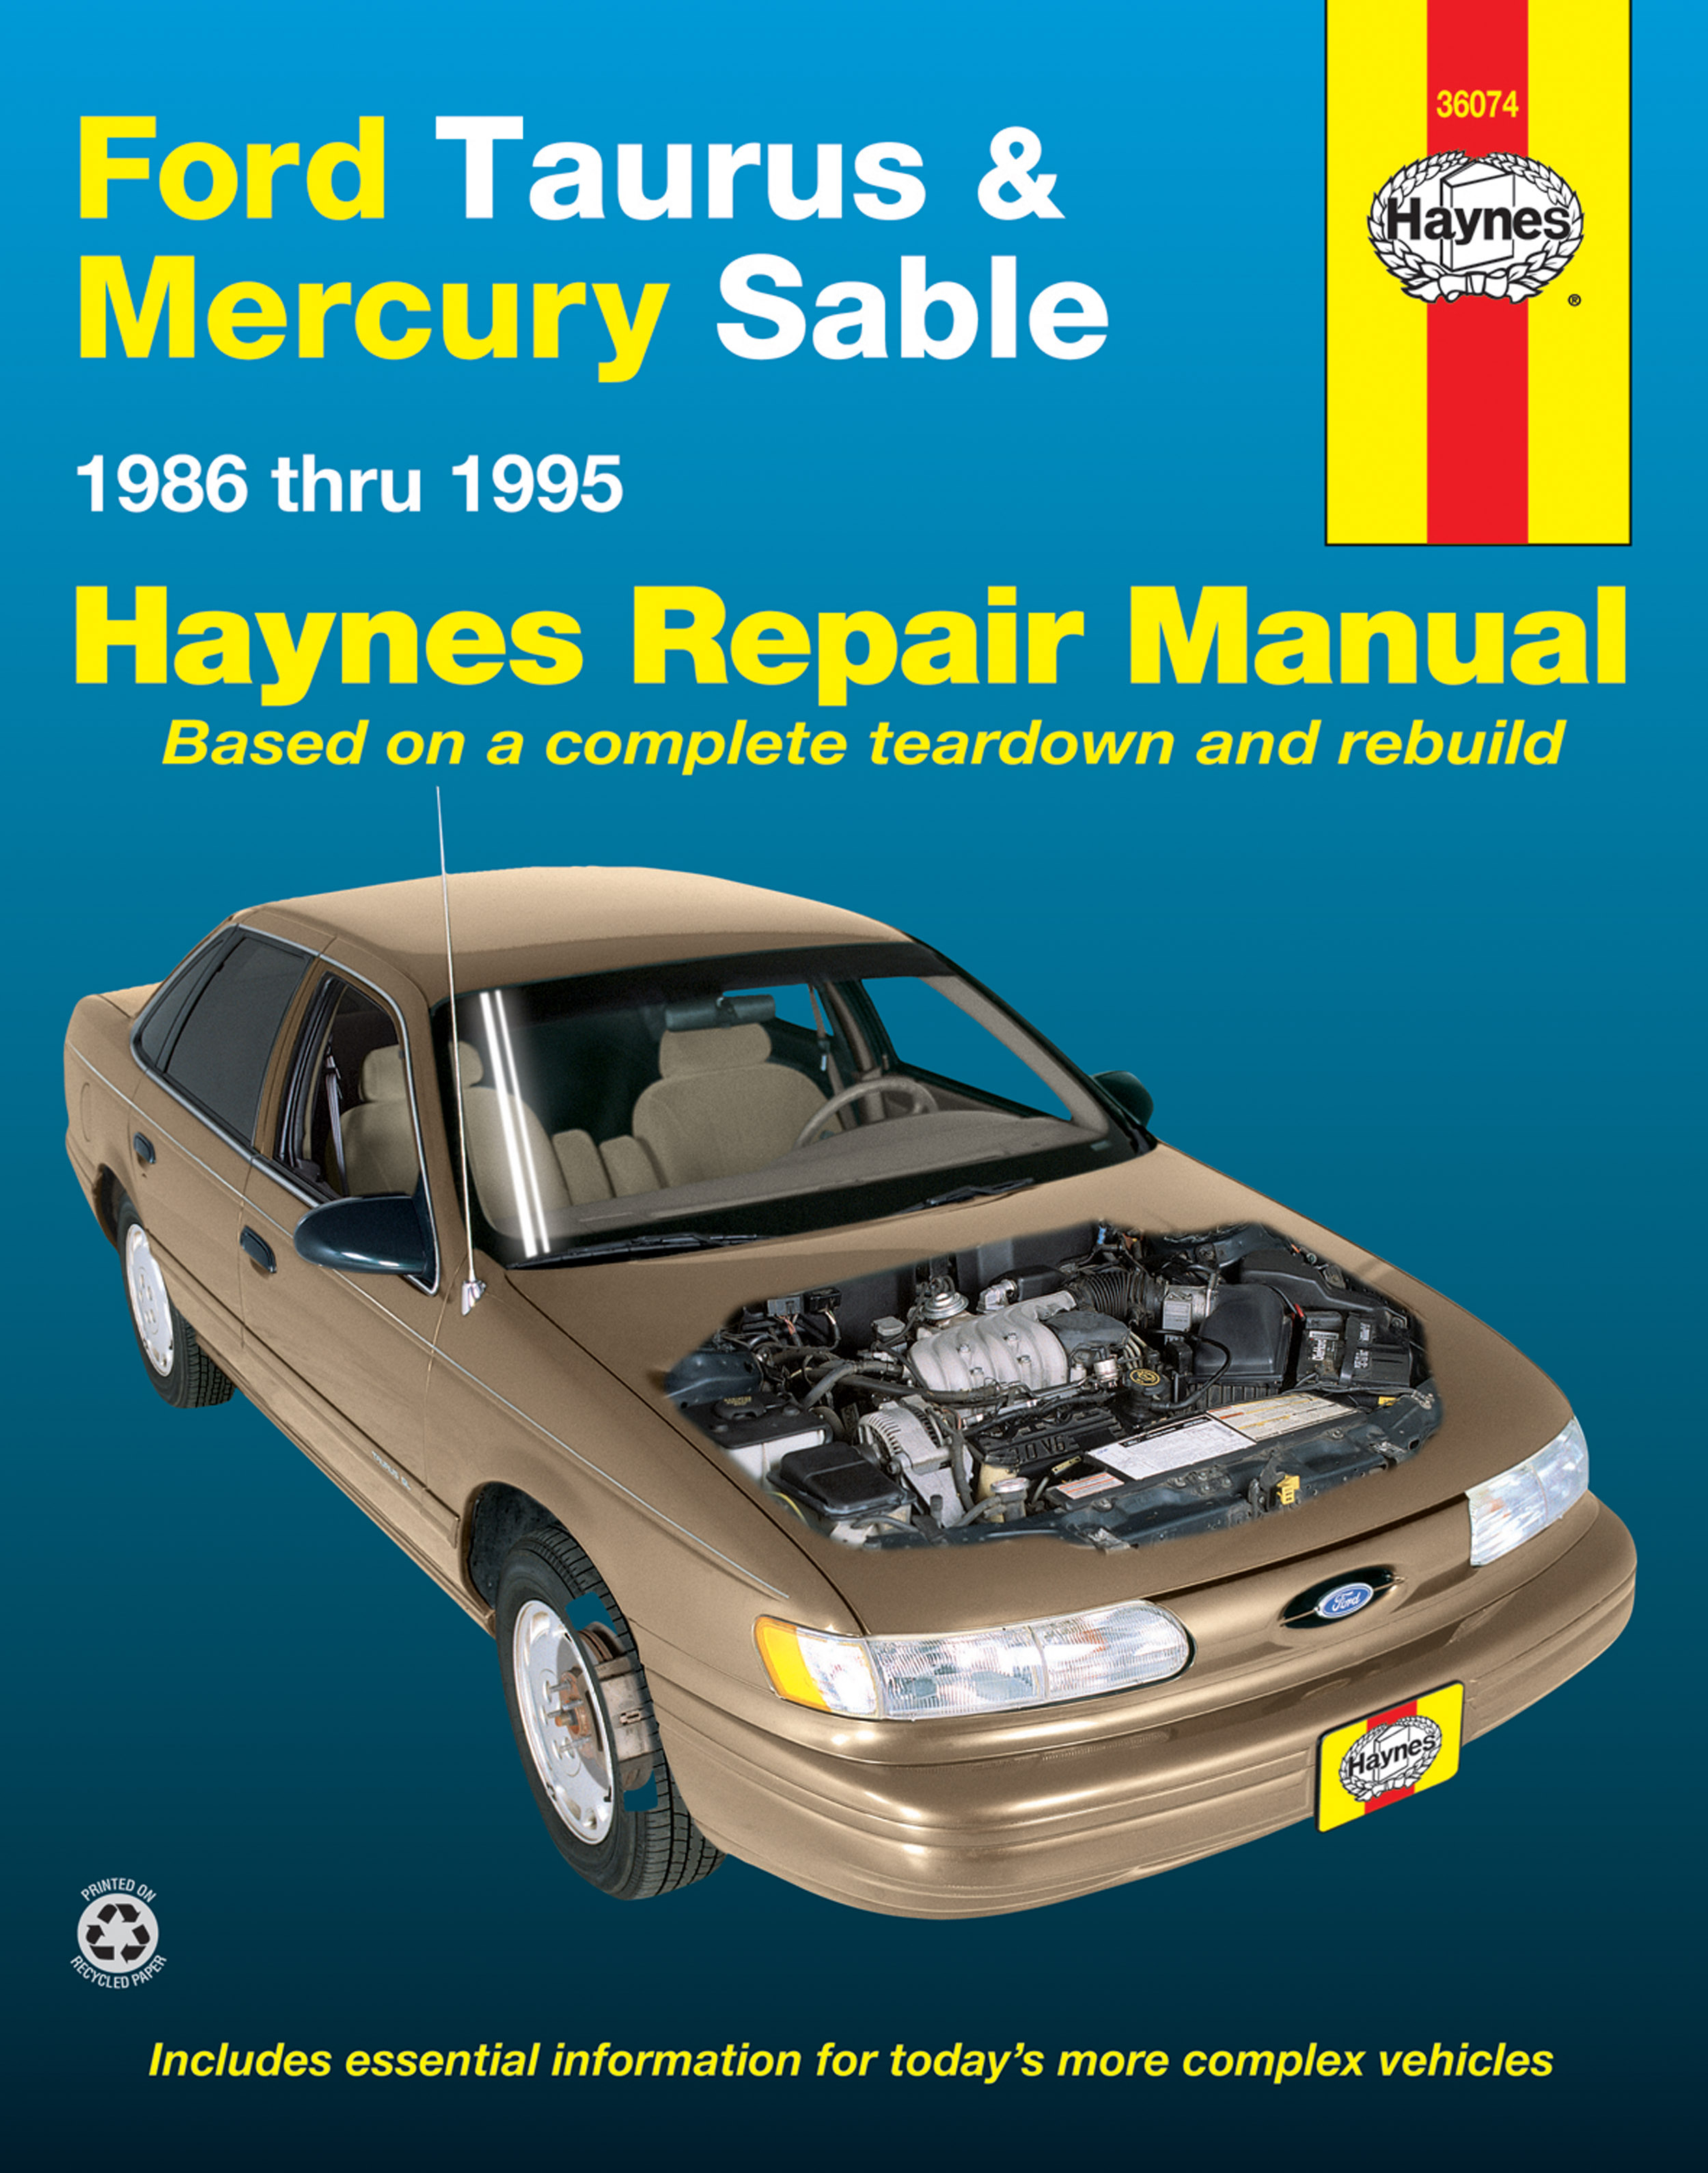 2000 Mercury Mystique Repair Manual Circuit Board Wiring Diagram G01 28667 Sable Haynes Manuals Rh Com Cougar V6 Owners